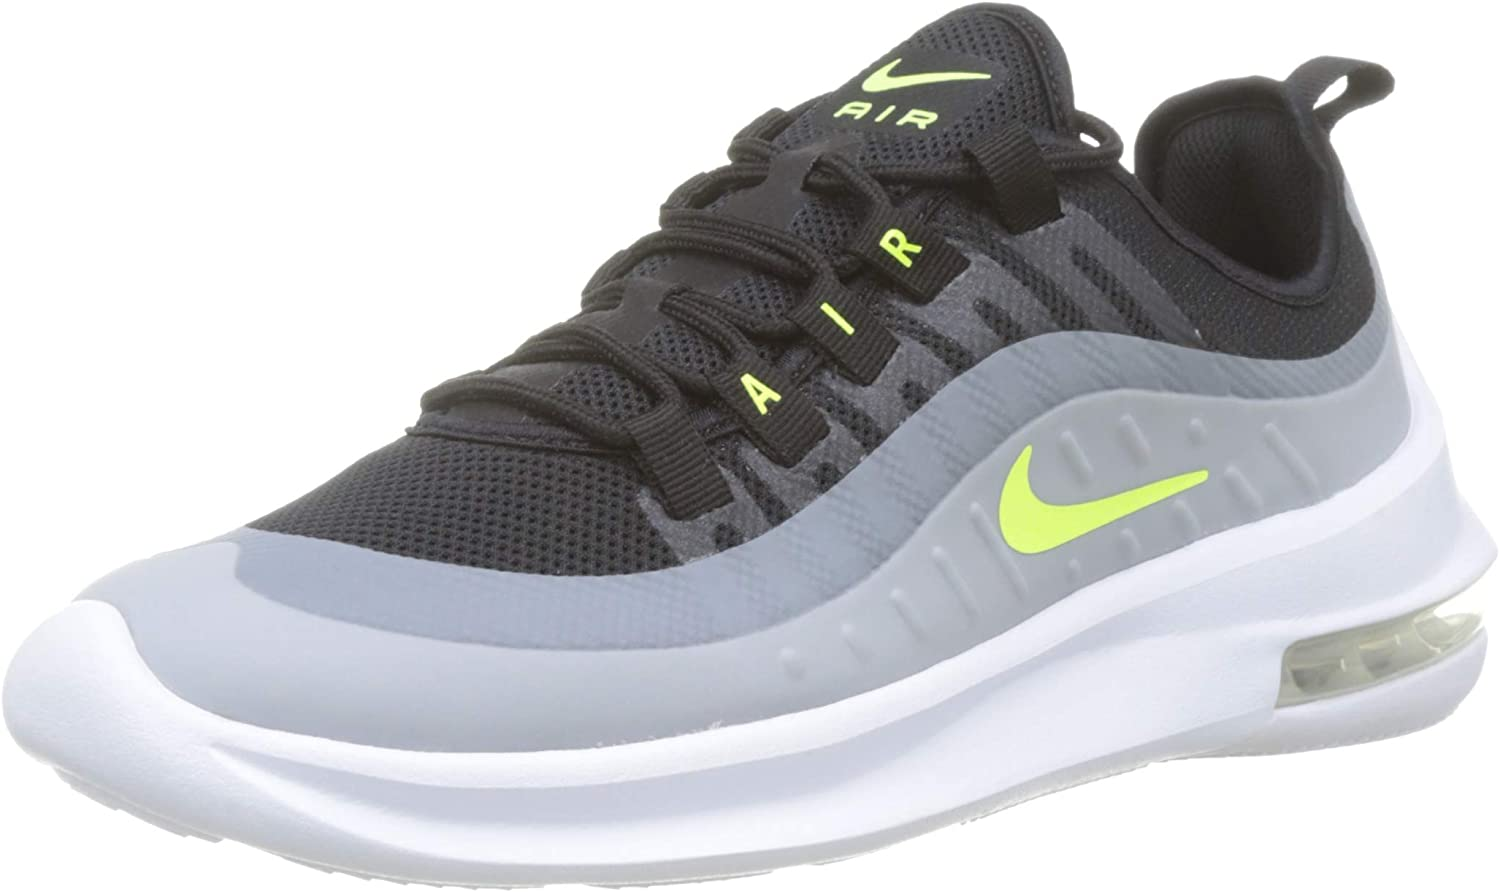 Nike Men's Air Max Axis Running shoes